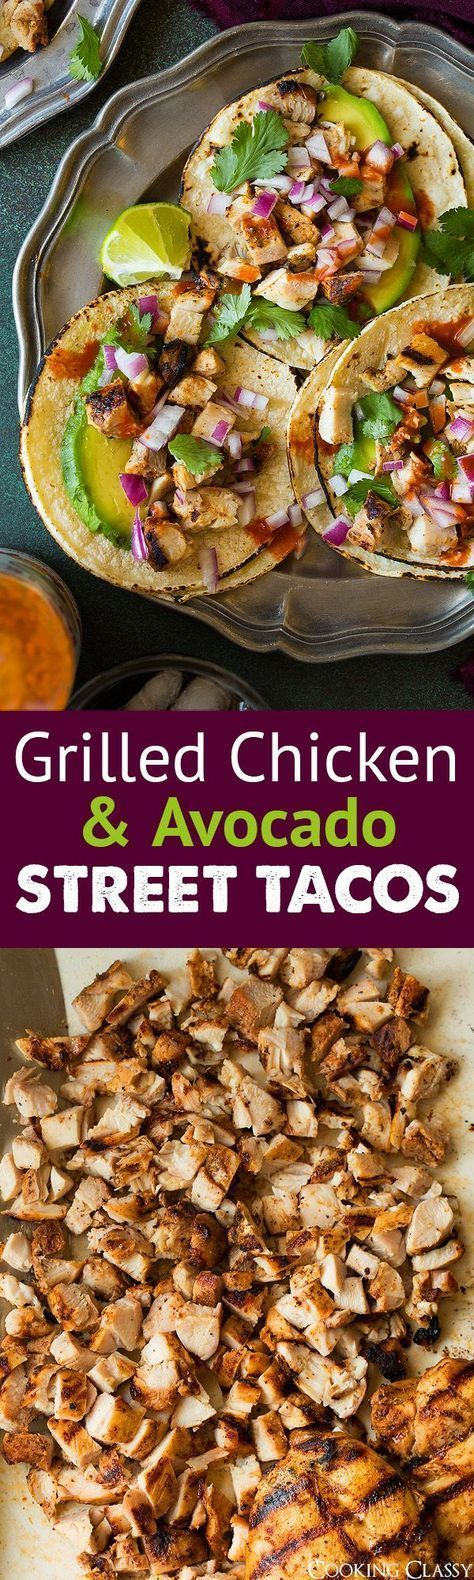 Grilled Chicken and Avocado Street Tacos - Cooking Classy: - sans tortillas